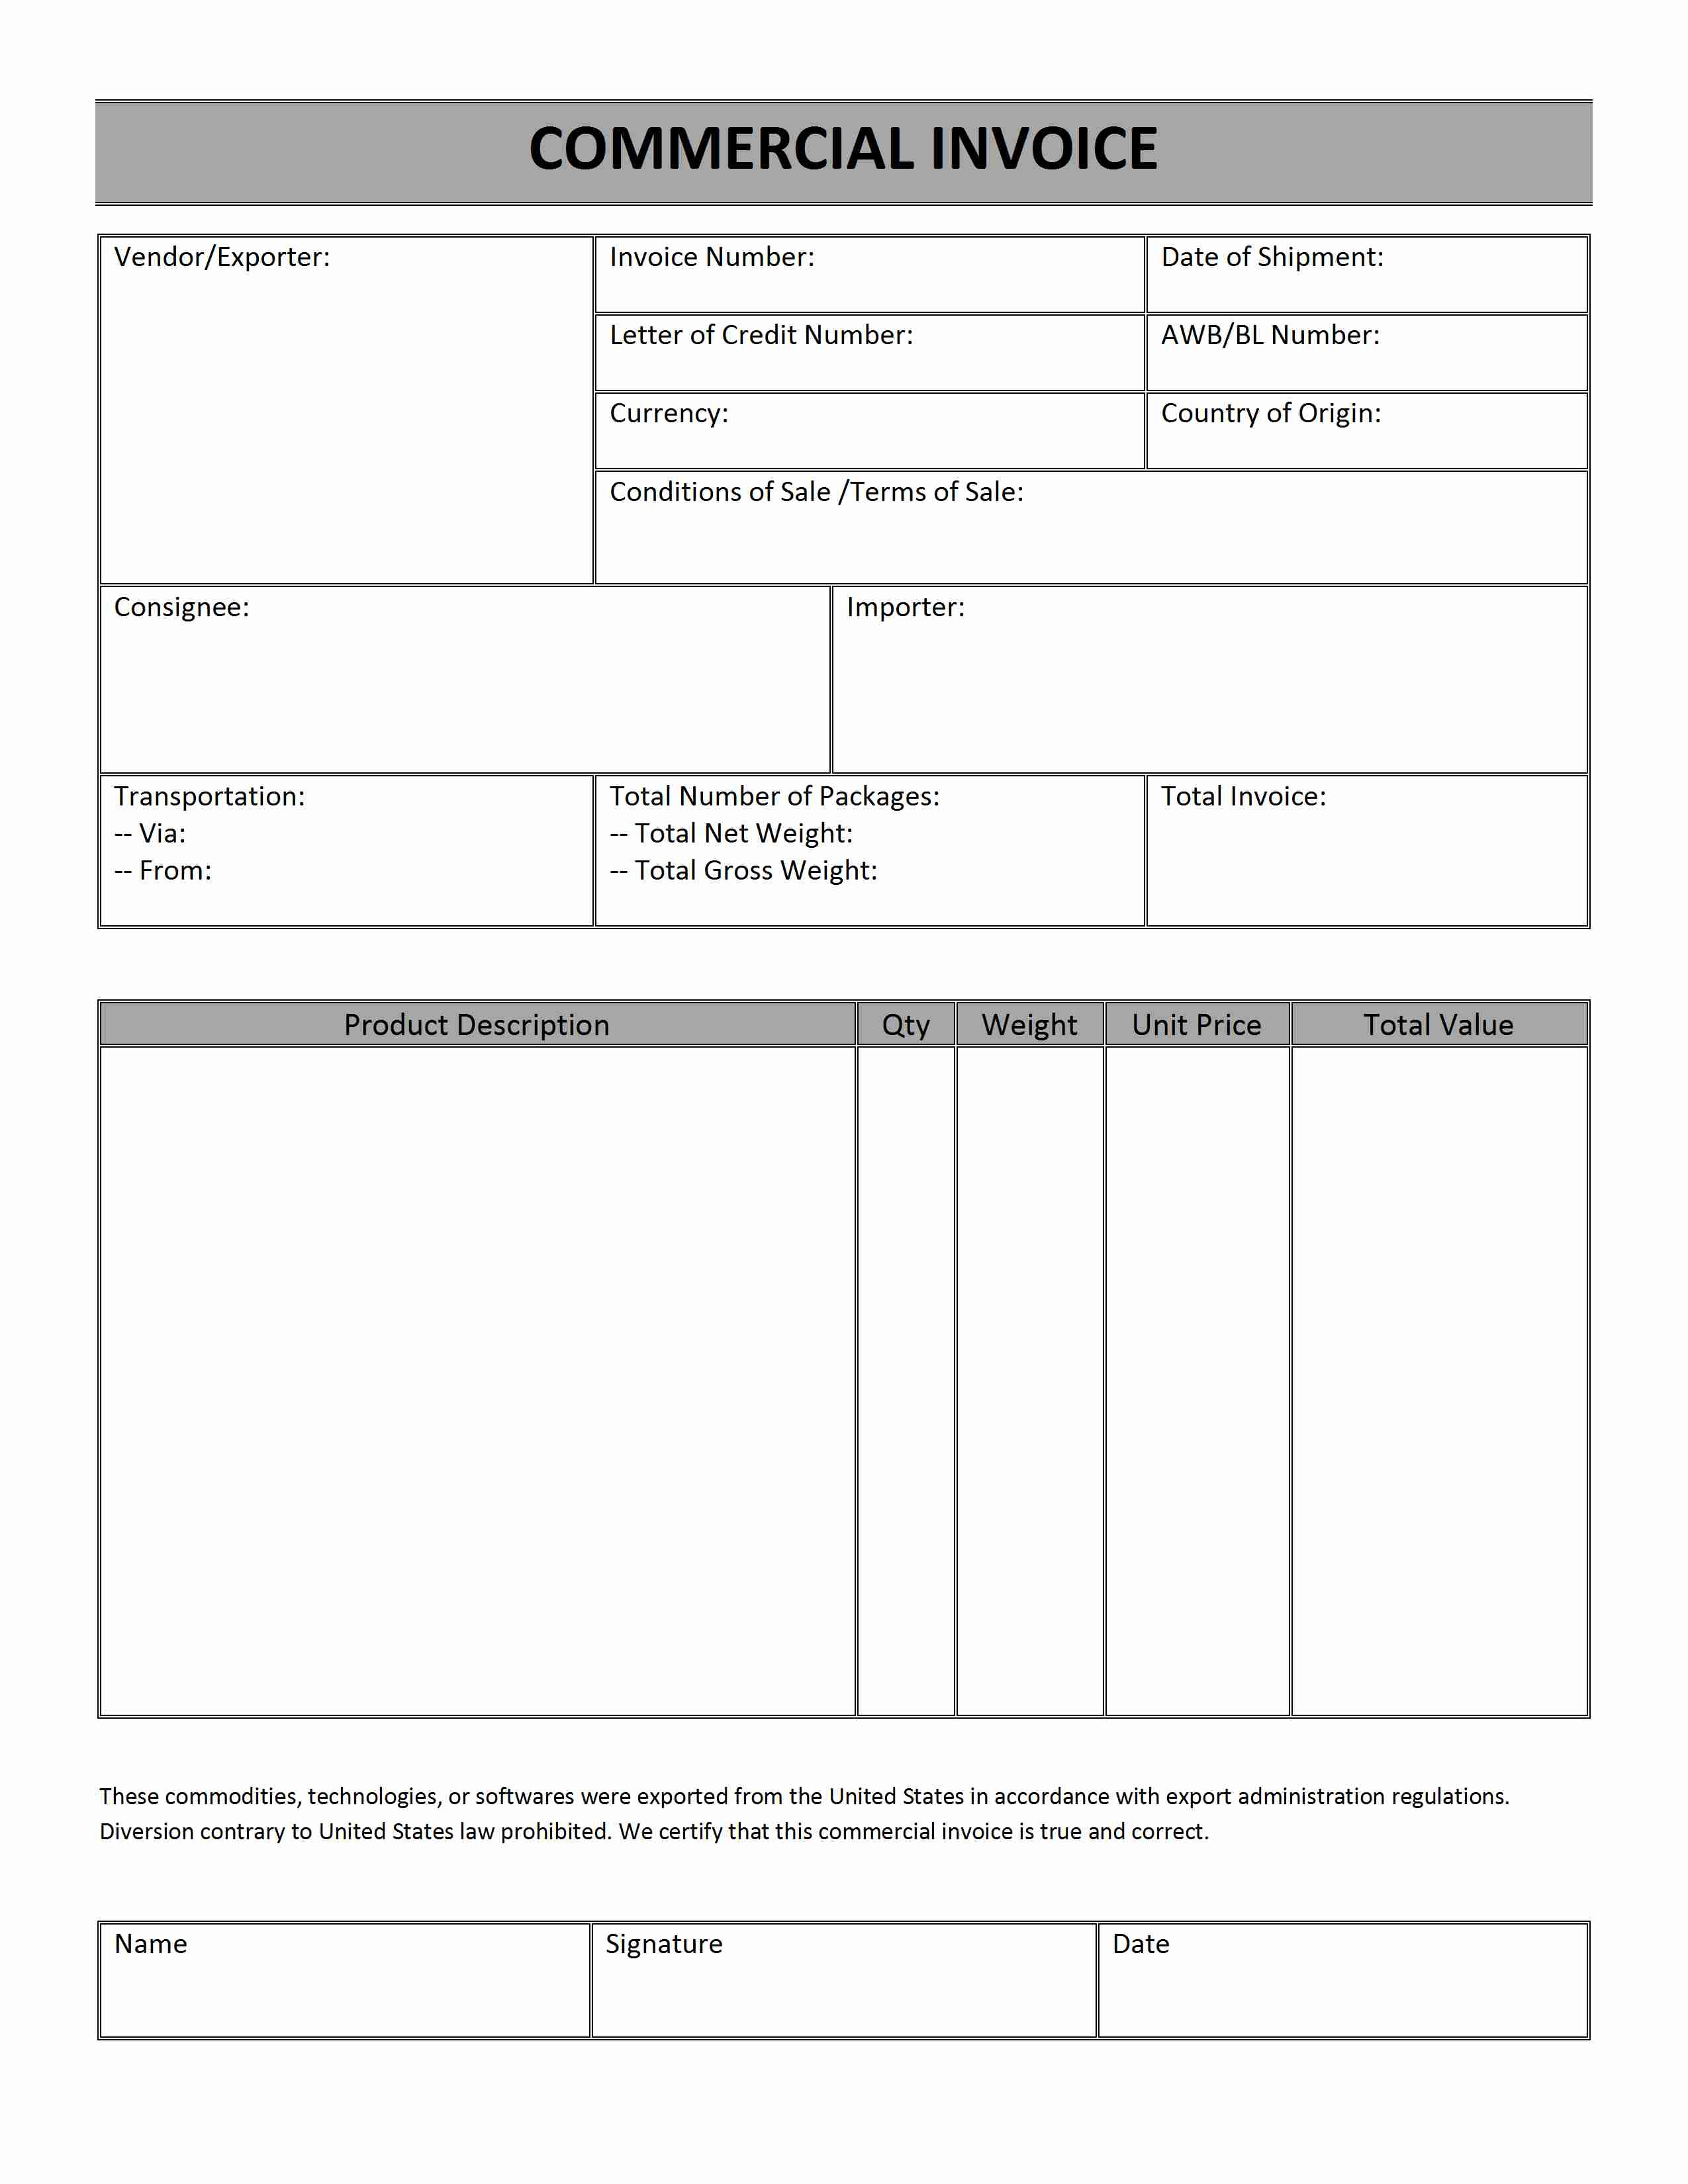 Pigbrotherus  Remarkable Printable Sales Invoice Simple Invoice Form Free Invoice  With Inspiring Printable Receipt Free  Free Printable Raffle Tickets  Receipt   Printable With Enchanting Sample Proforma Invoice In Word Also Print Invoice Template In Addition Invoice Request Form Template And Hotel Invoice Format As Well As Invoice Layout Example Additionally Commercial Invoice Doc From Happytomco With Pigbrotherus  Inspiring Printable Sales Invoice Simple Invoice Form Free Invoice  With Enchanting Printable Receipt Free  Free Printable Raffle Tickets  Receipt   Printable And Remarkable Sample Proforma Invoice In Word Also Print Invoice Template In Addition Invoice Request Form Template From Happytomco